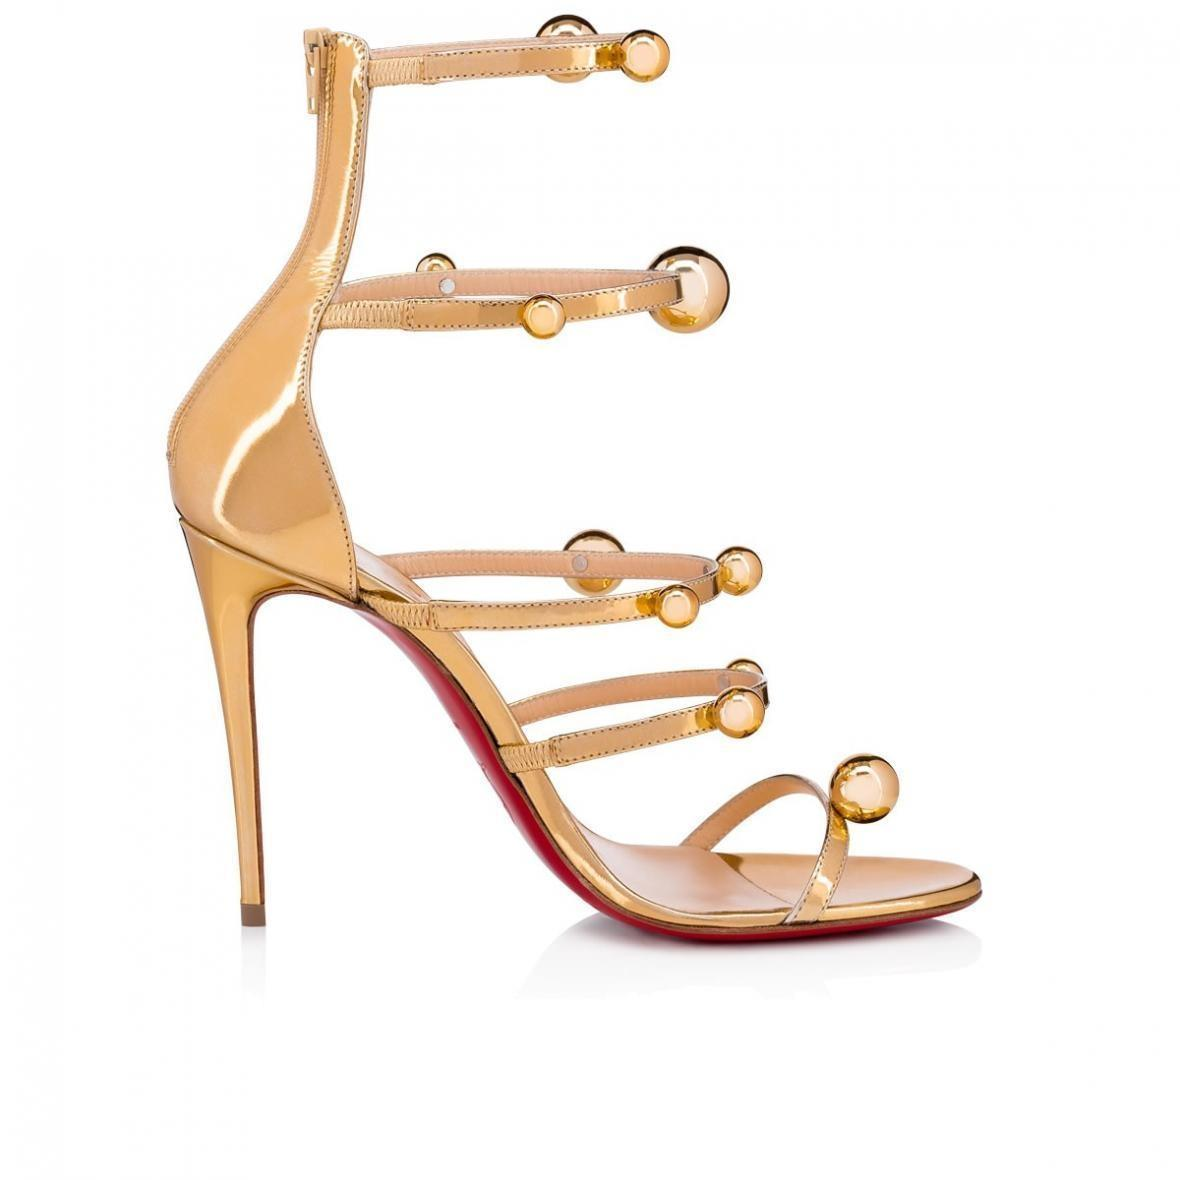 618cbdd80941 ... Christian Louboutin Gold Atonana Atonana Atonana 100 Specchio Patent  Leather Ball Strappy Sandal Heel Pumps Size ...